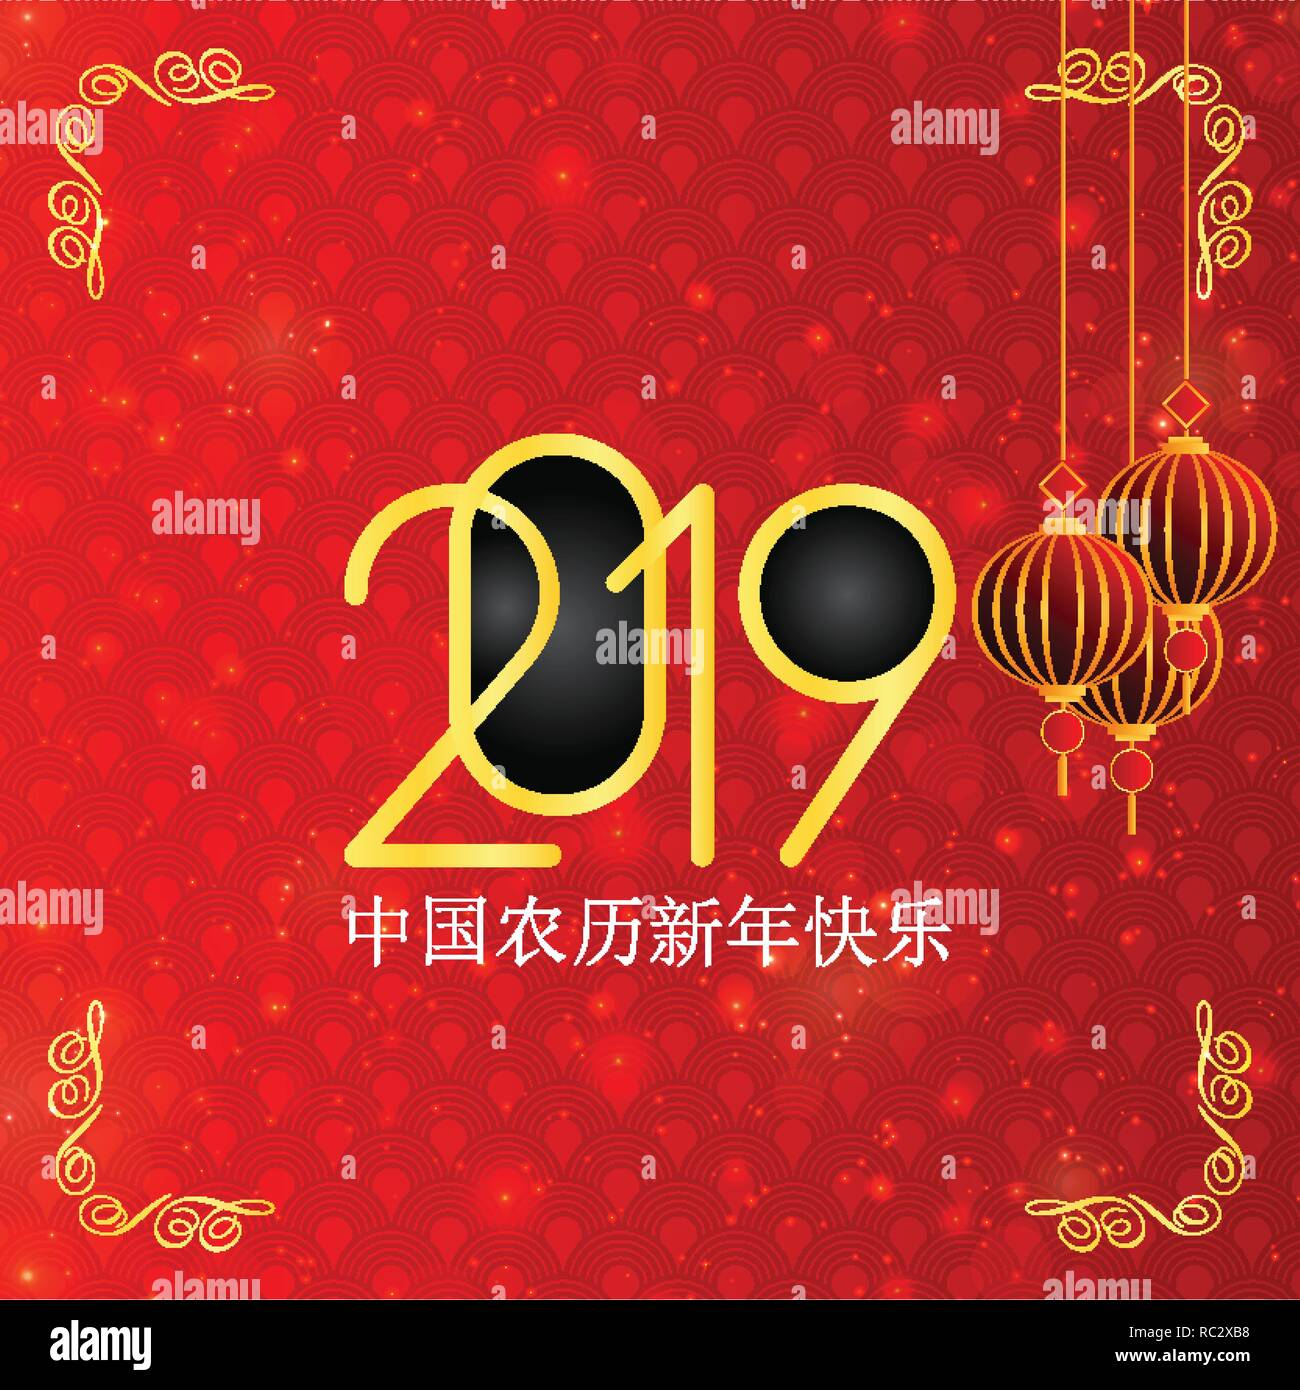 Happy Chinese New Year 2019. Chinese characters Greetings Card background Stock Vector